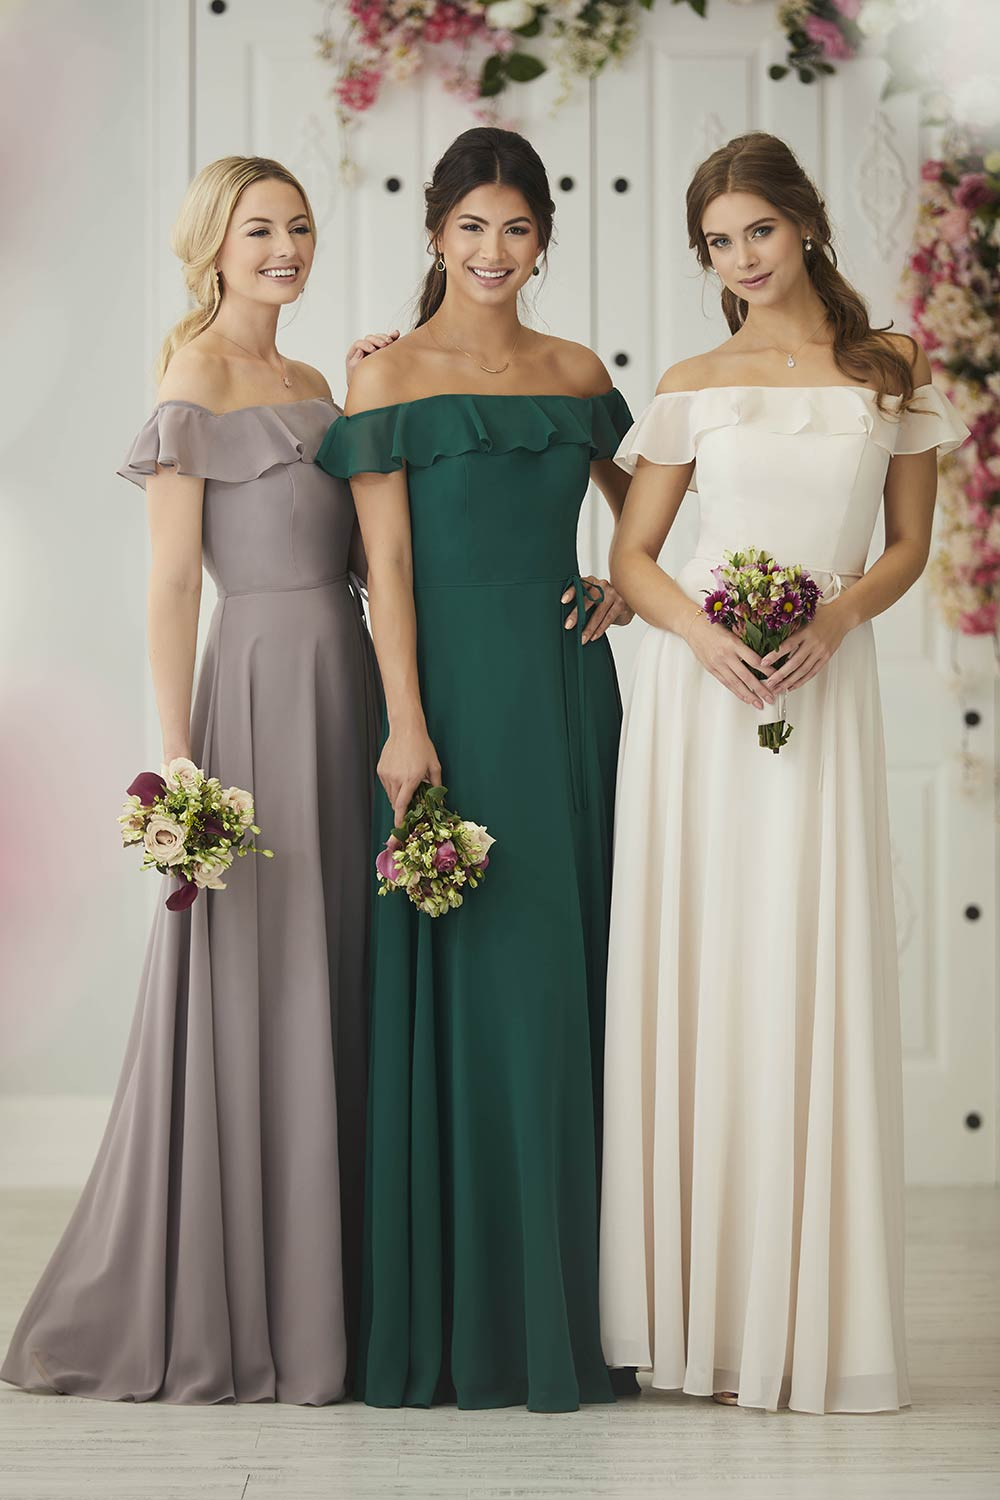 bridesmaid-dresses-jacquelin-bridals-canada-27305